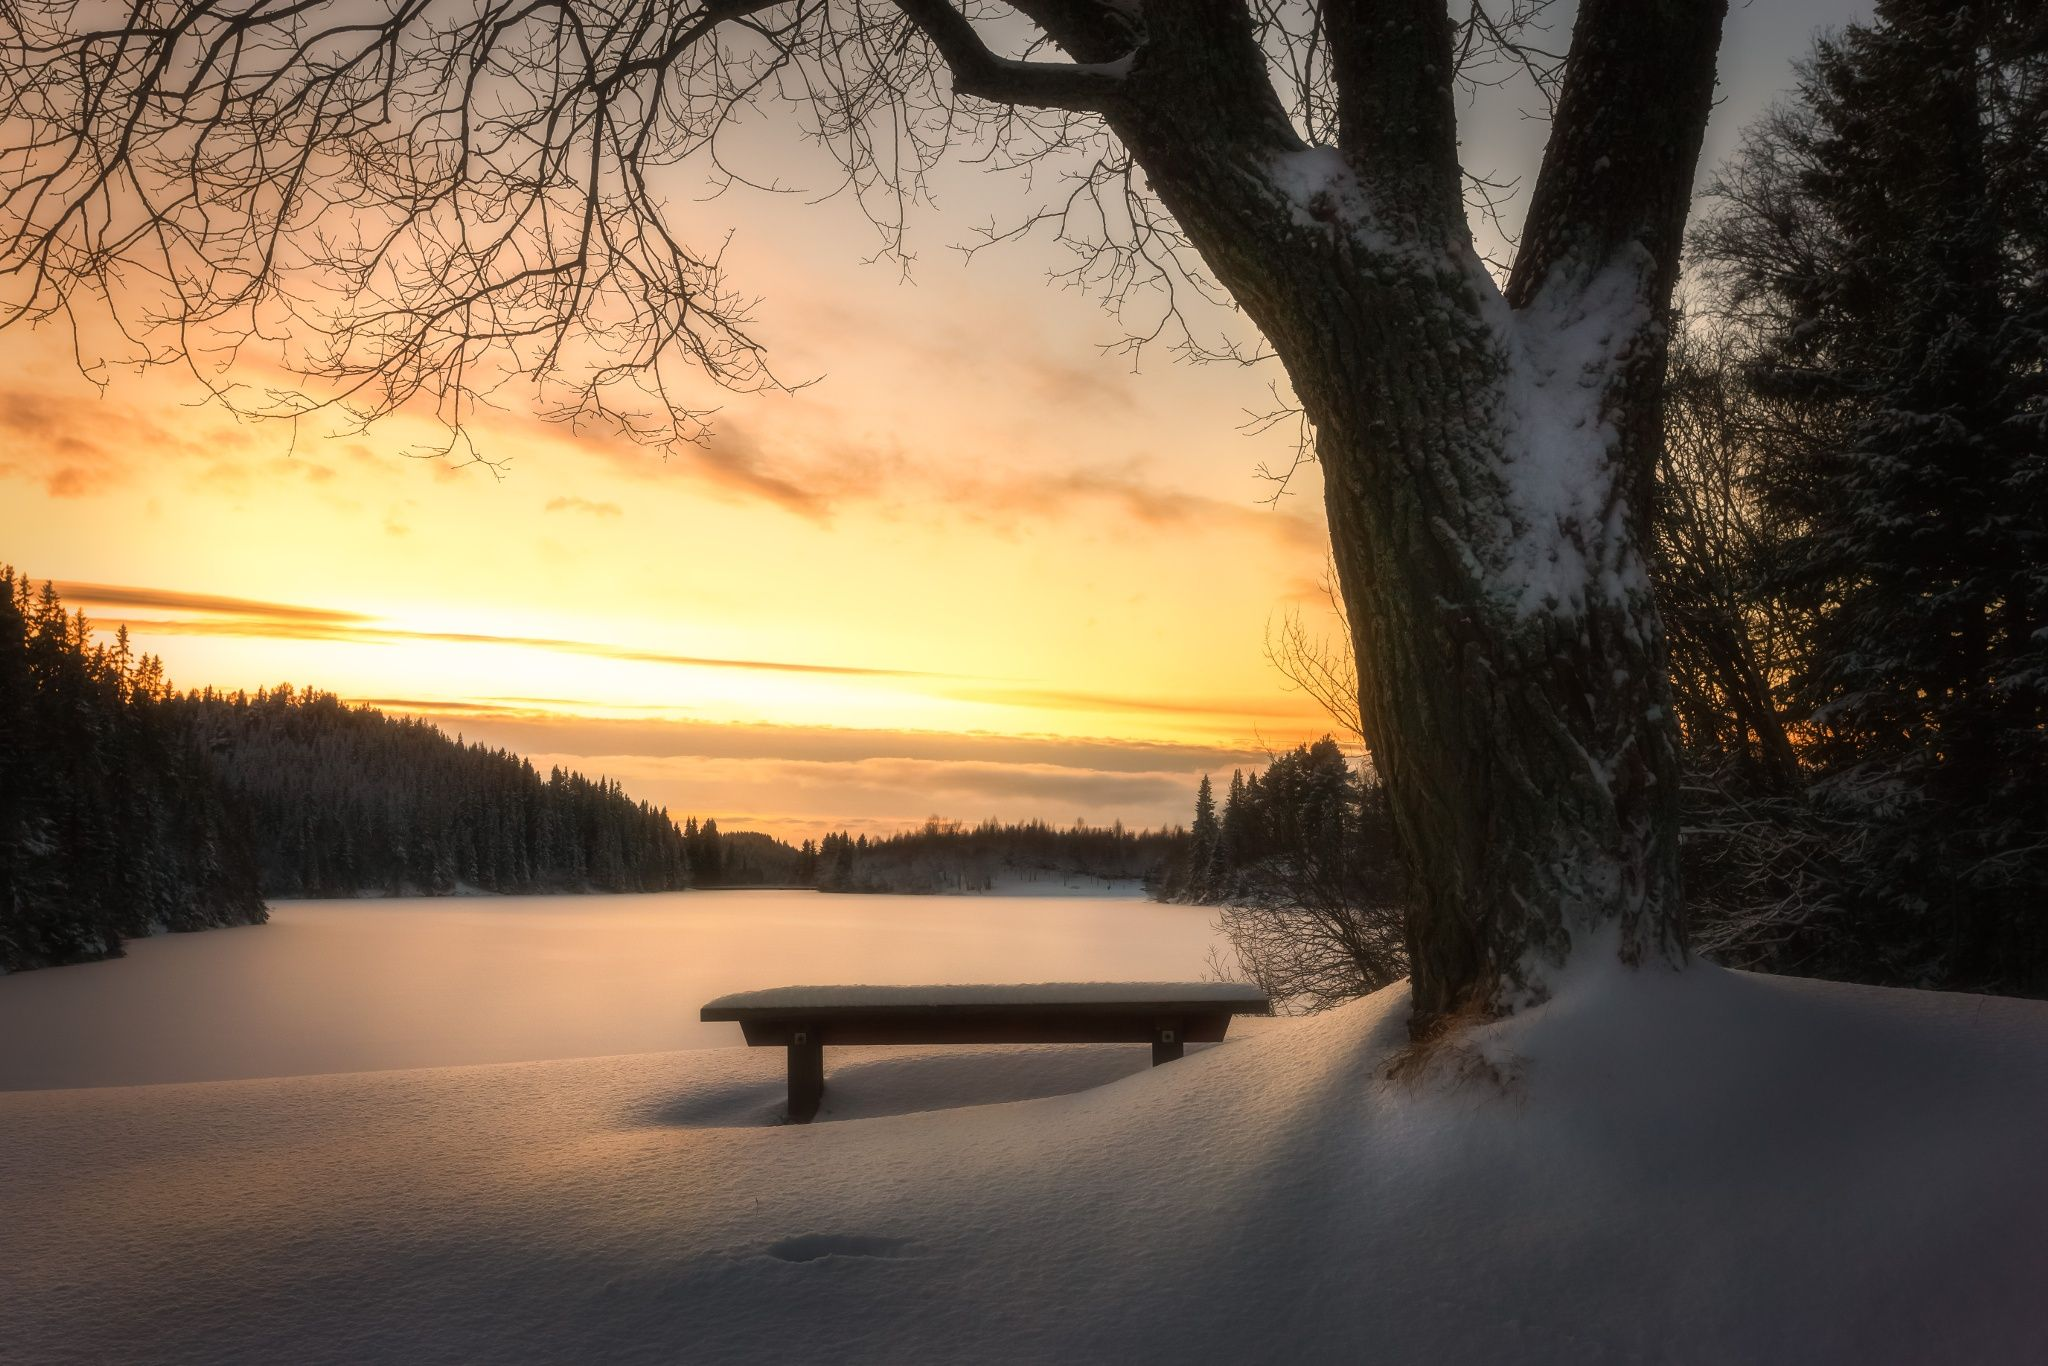 Photograph Winter Sunset by Knut Aage Dahl on 500px